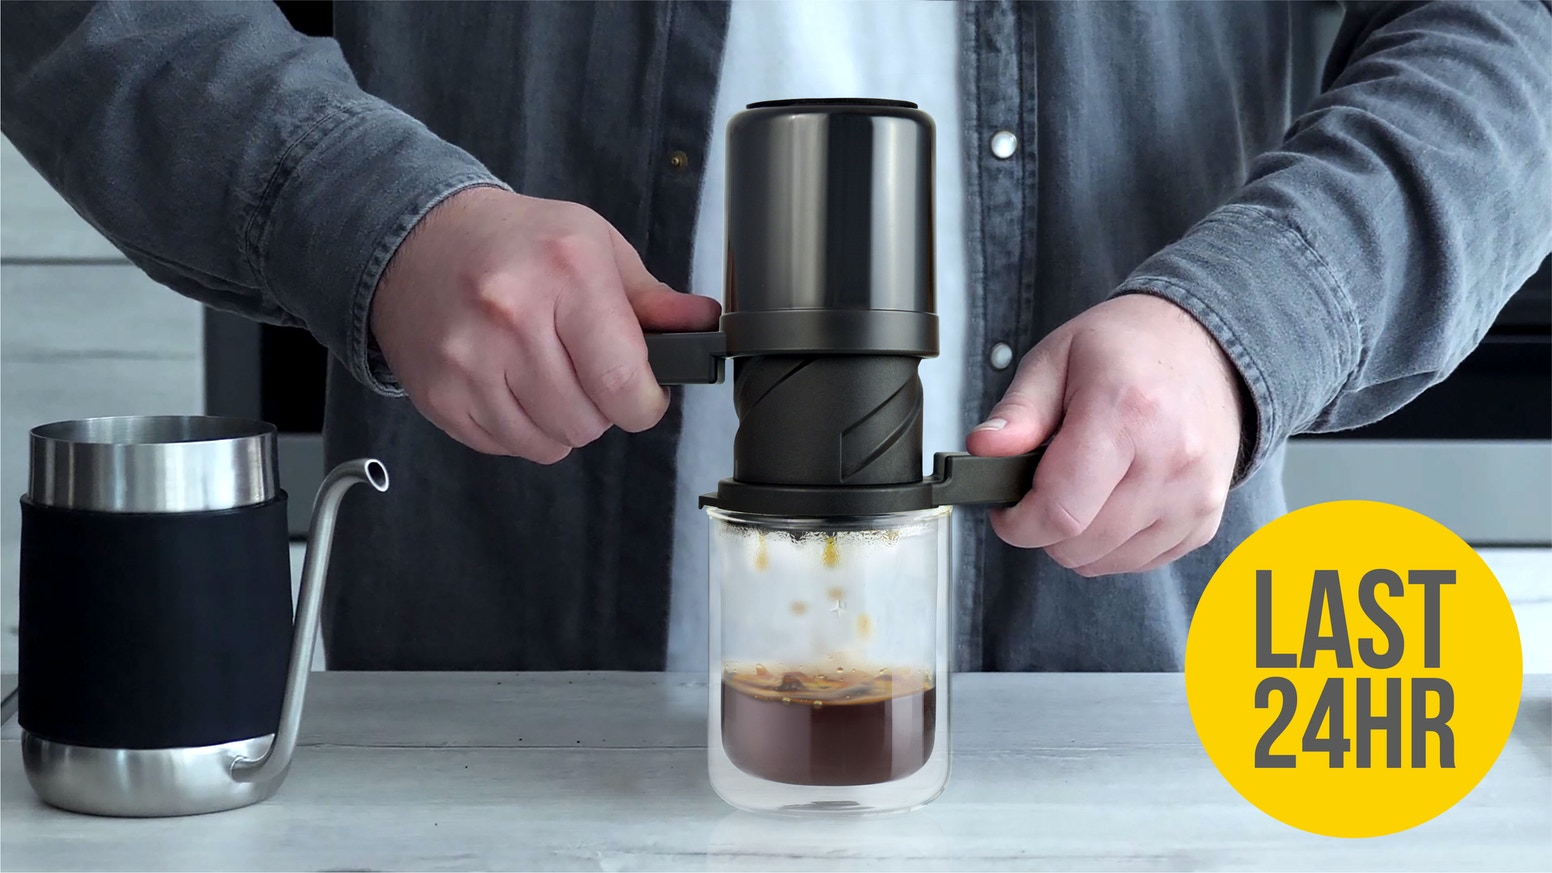 Explore and enjoy irresistibly smooth, clean coffee in as little as 30 seconds with a 'twist' and our patent-pending brewing technique